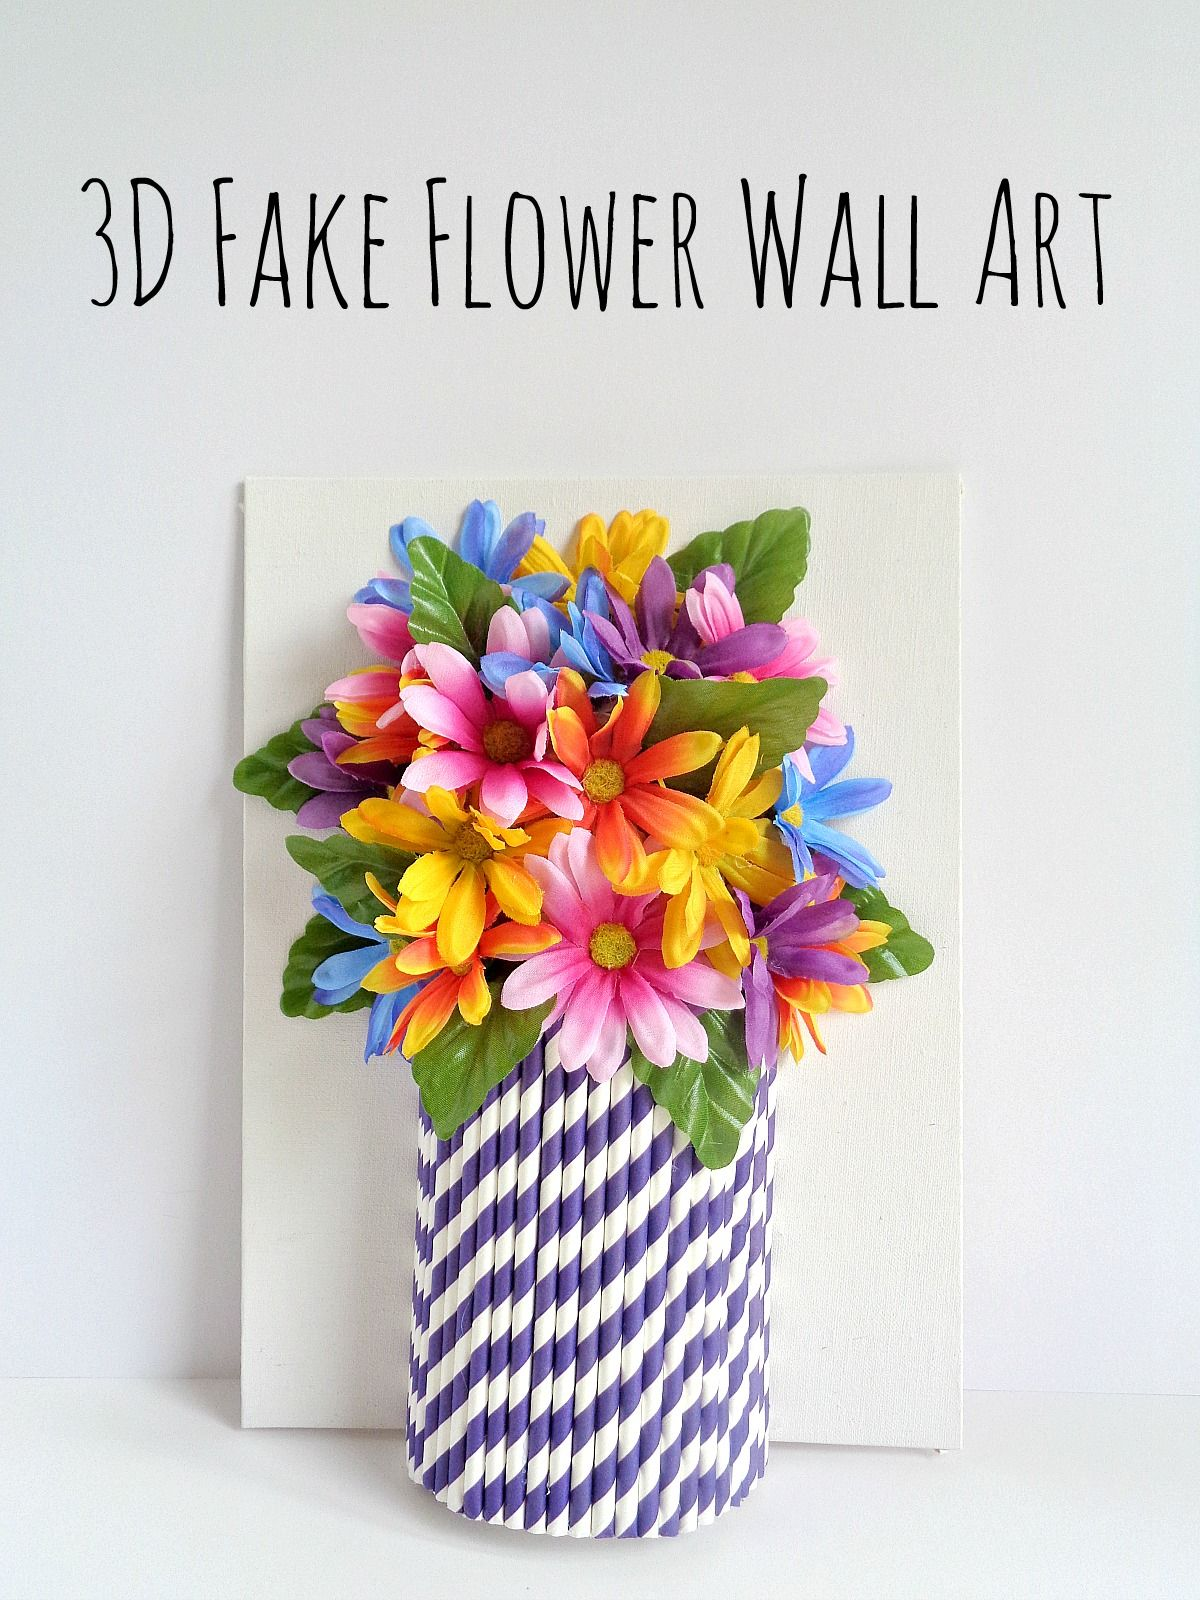 3D flower wall art made with paper straws